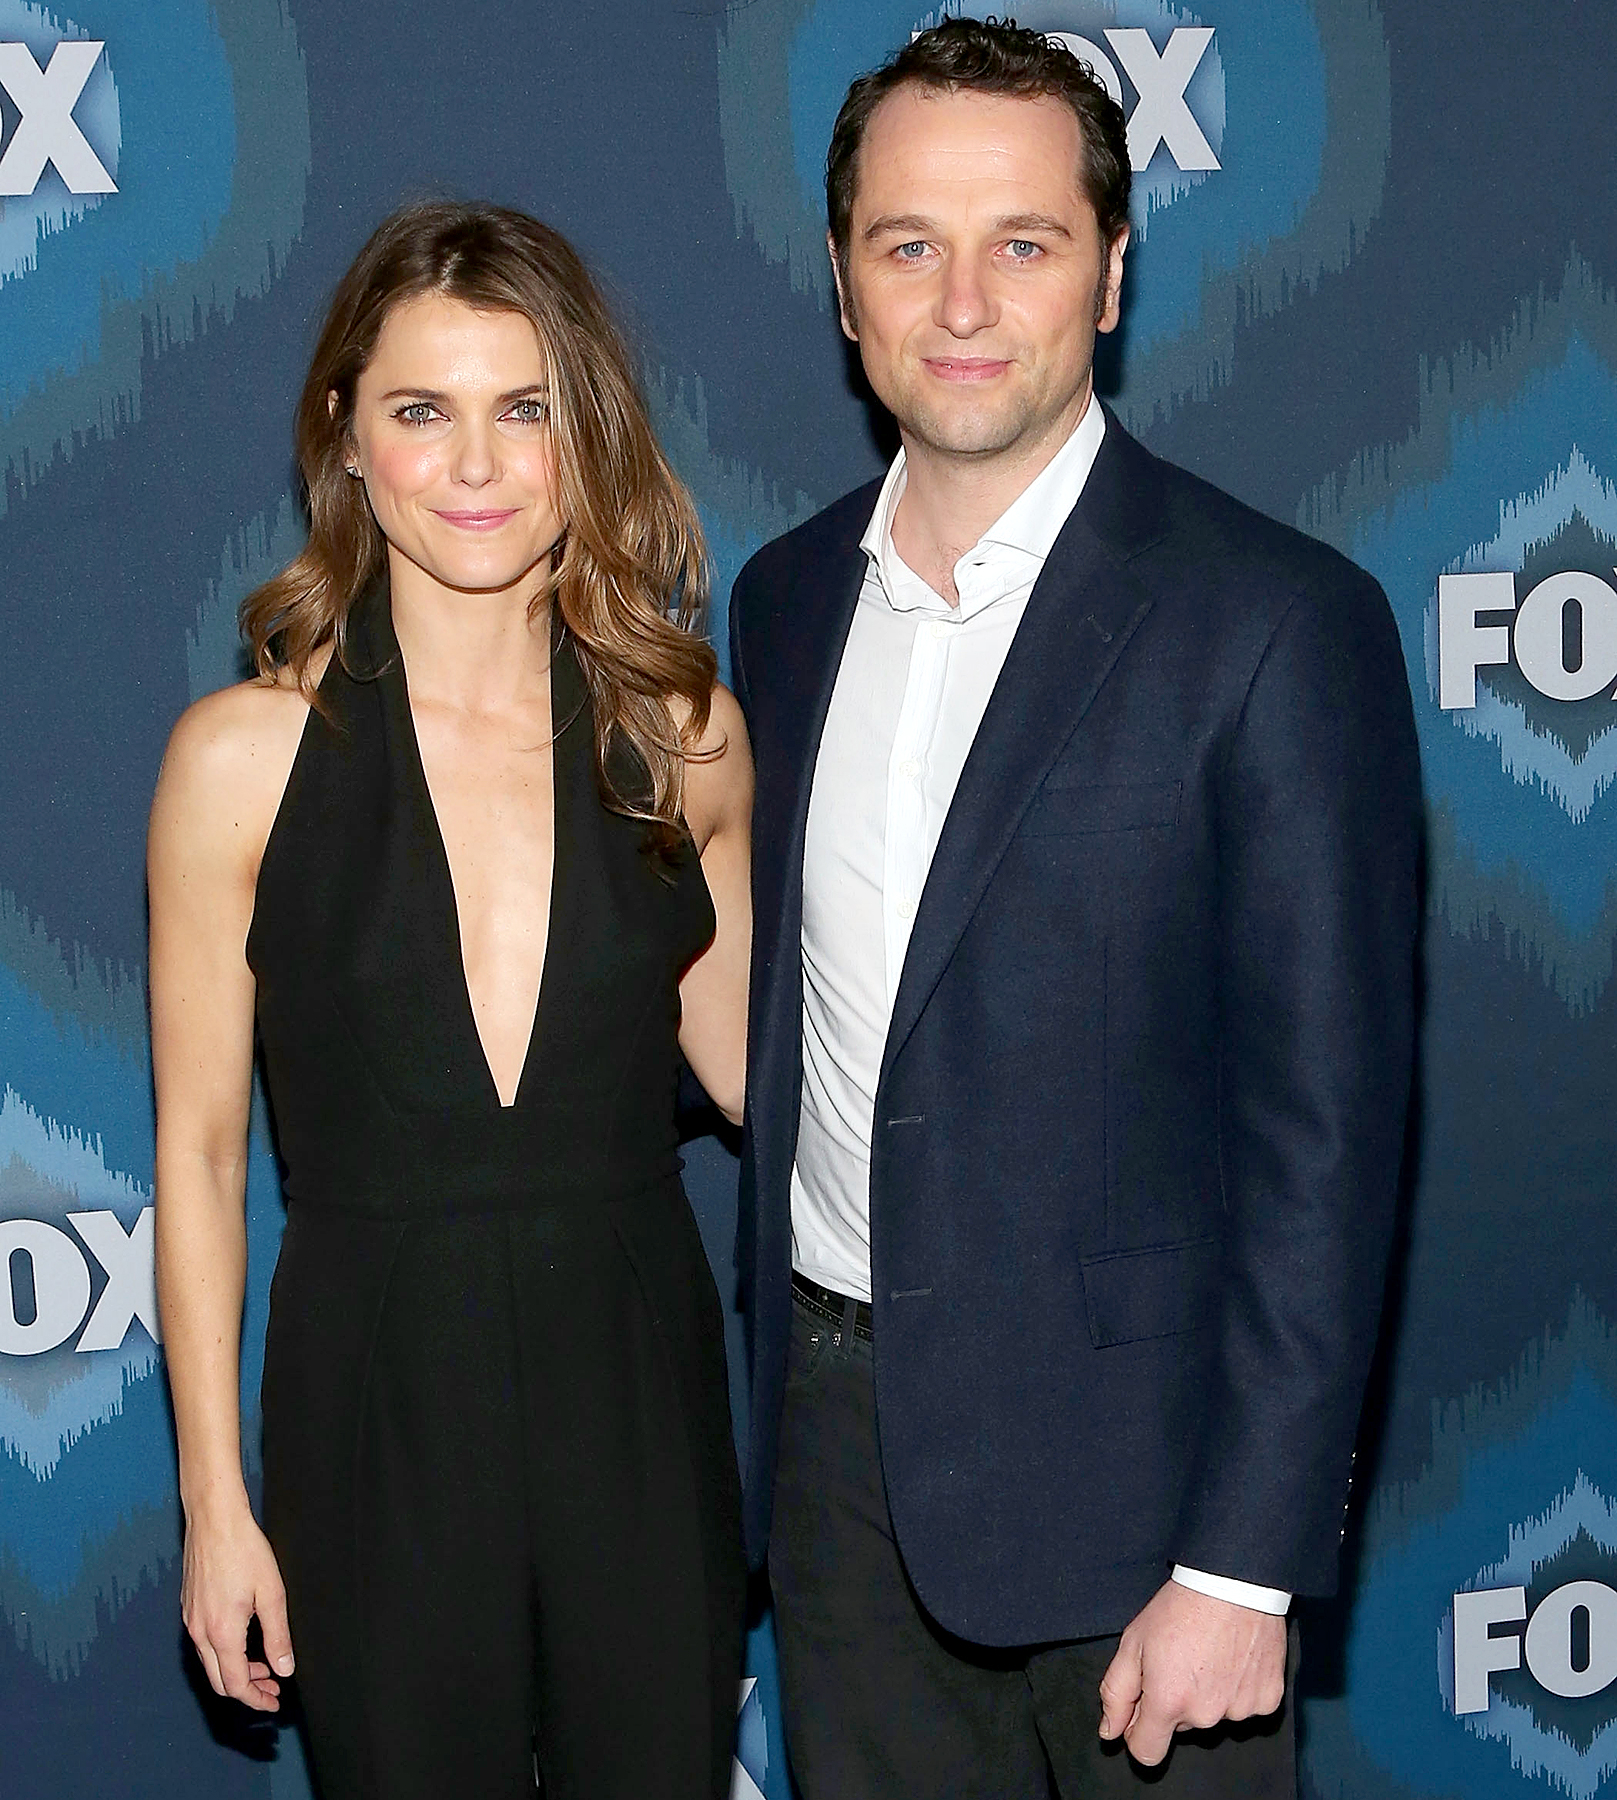 Keri Russell and Matthew Rhys attend the 2015 Fox All-Star Party.